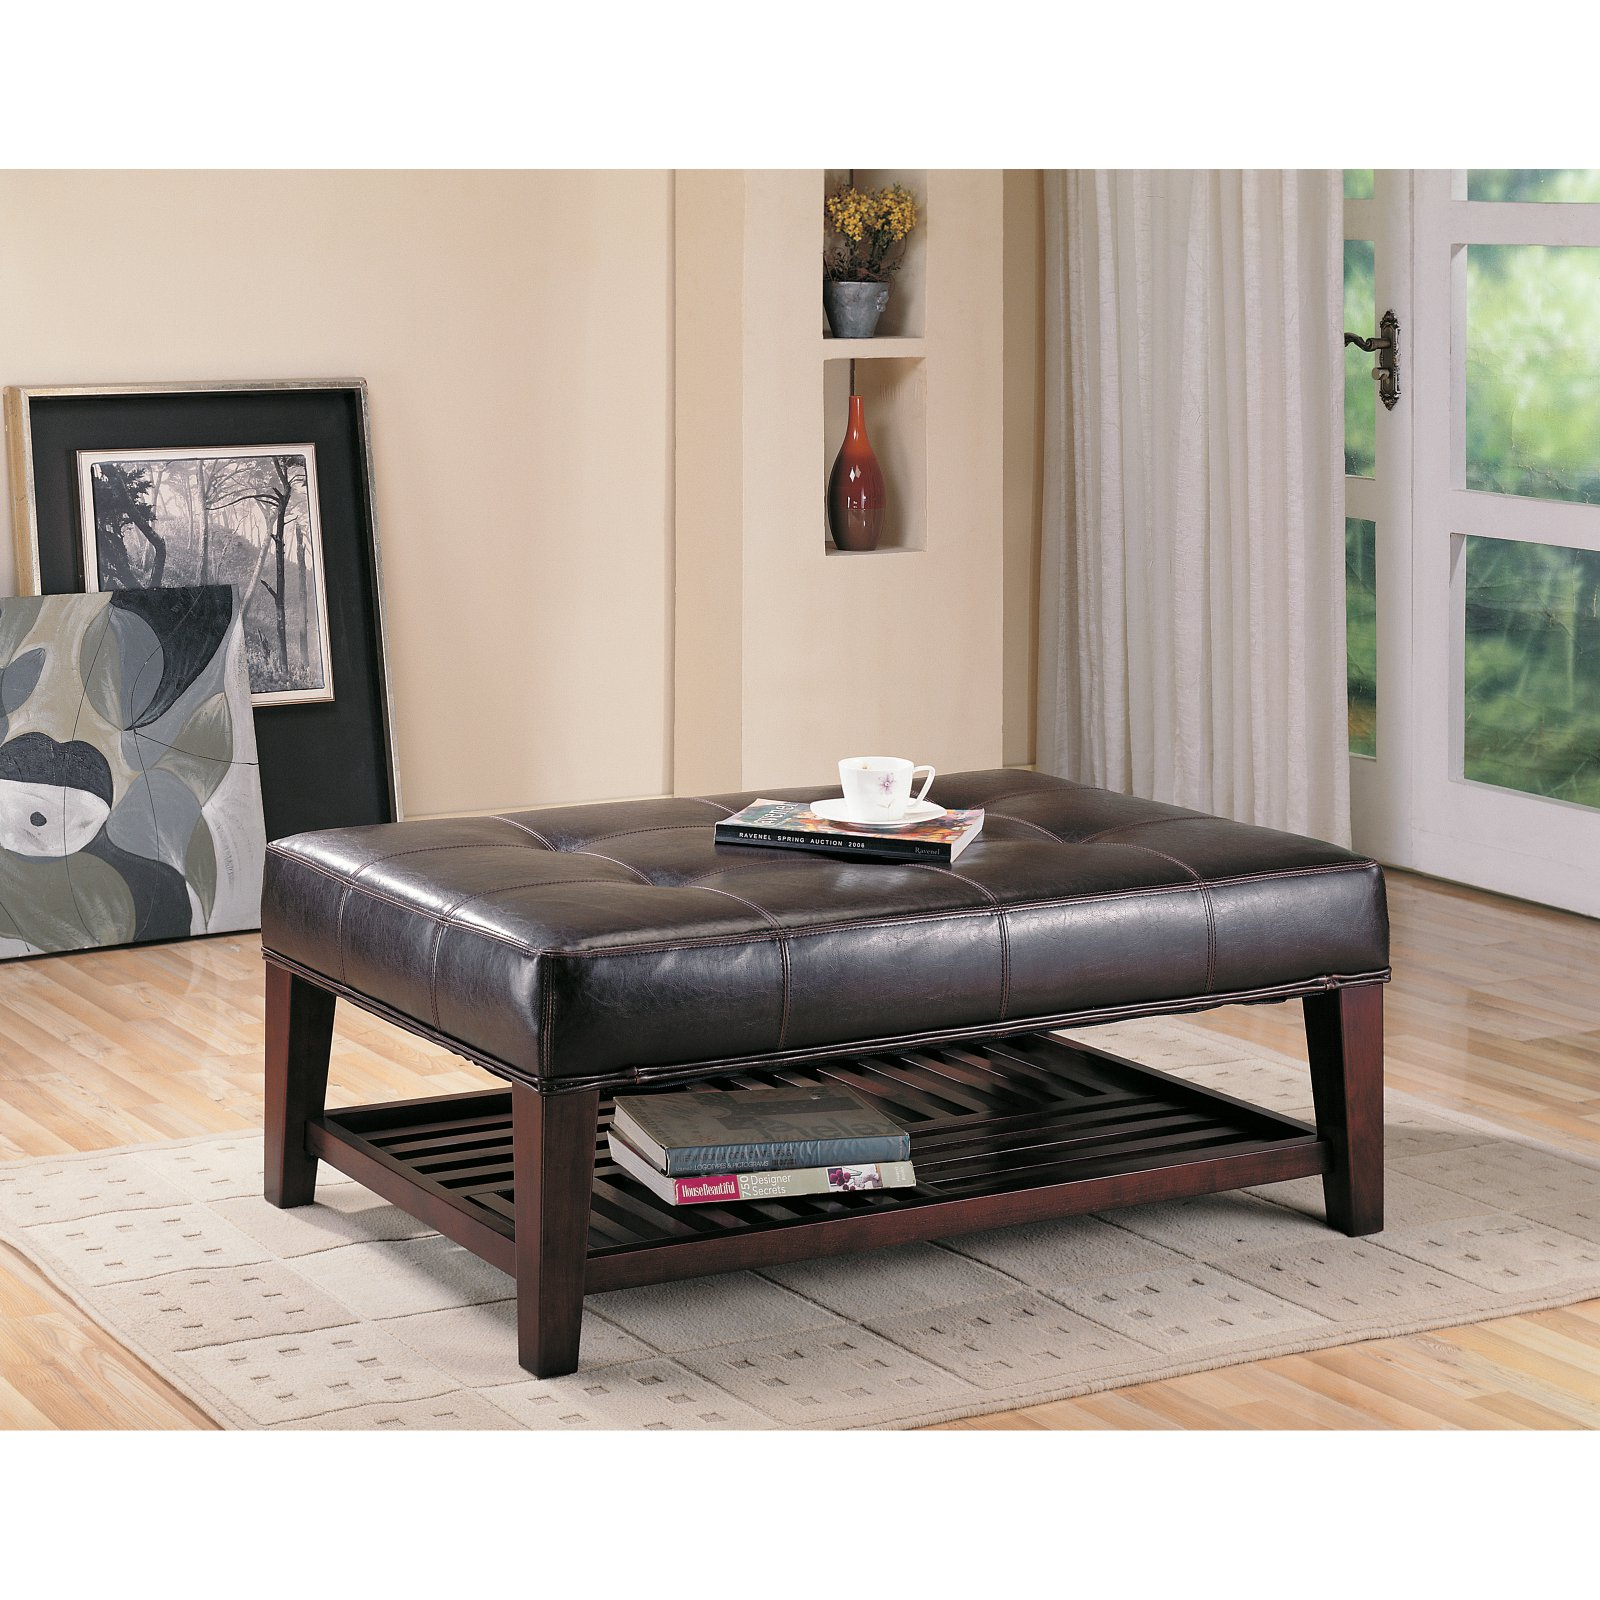 Tufted Accent Leatherette Ottoman, Brown